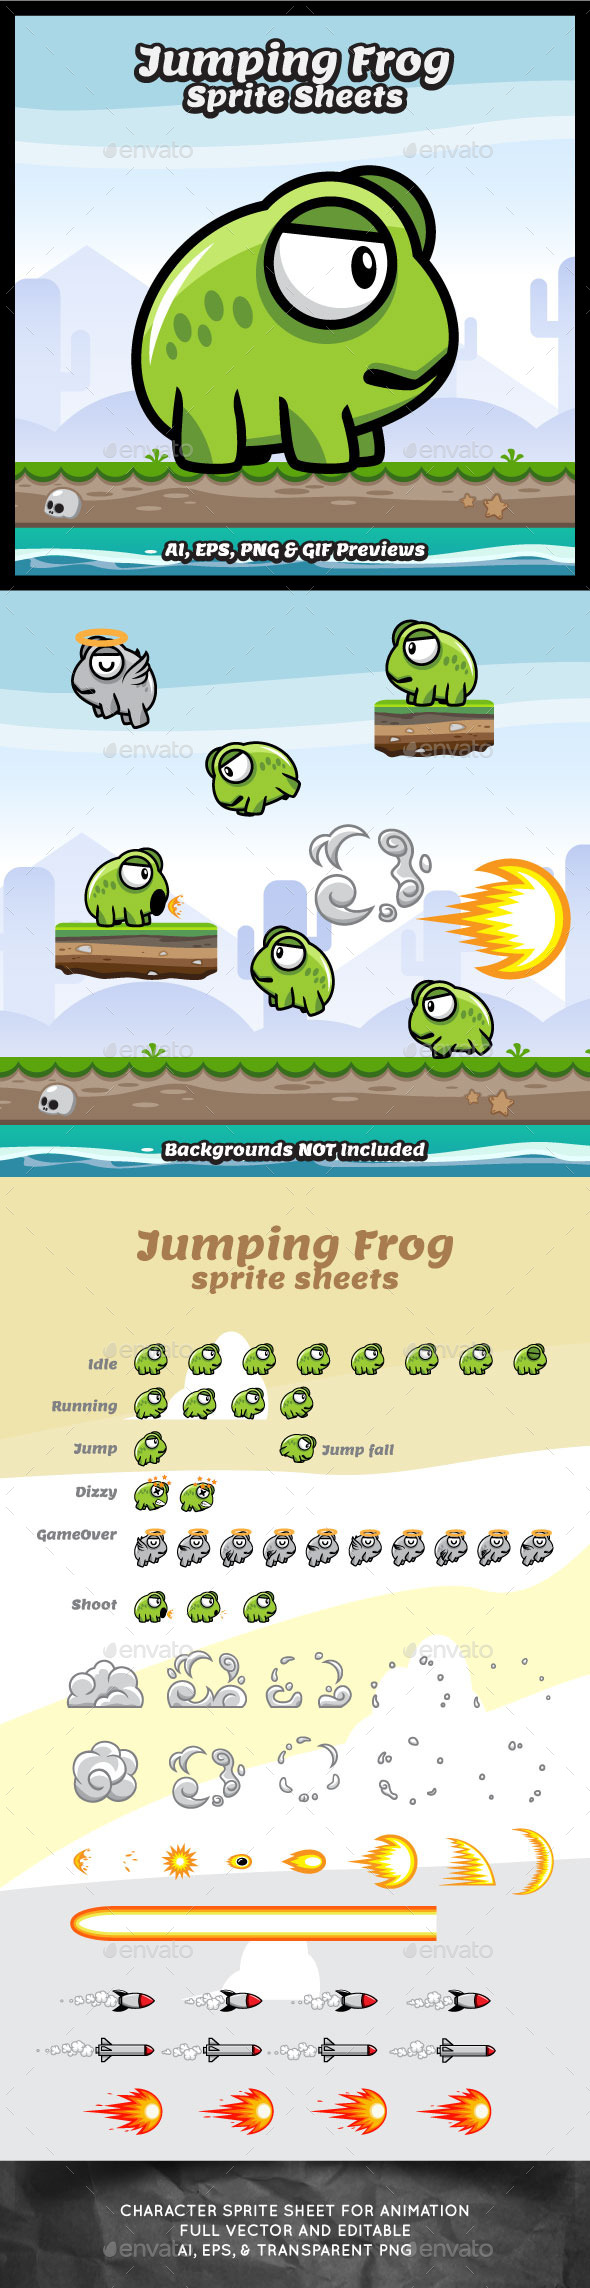 Jumping Frog Sprite Sheets Game Character - Sprites Game Assets